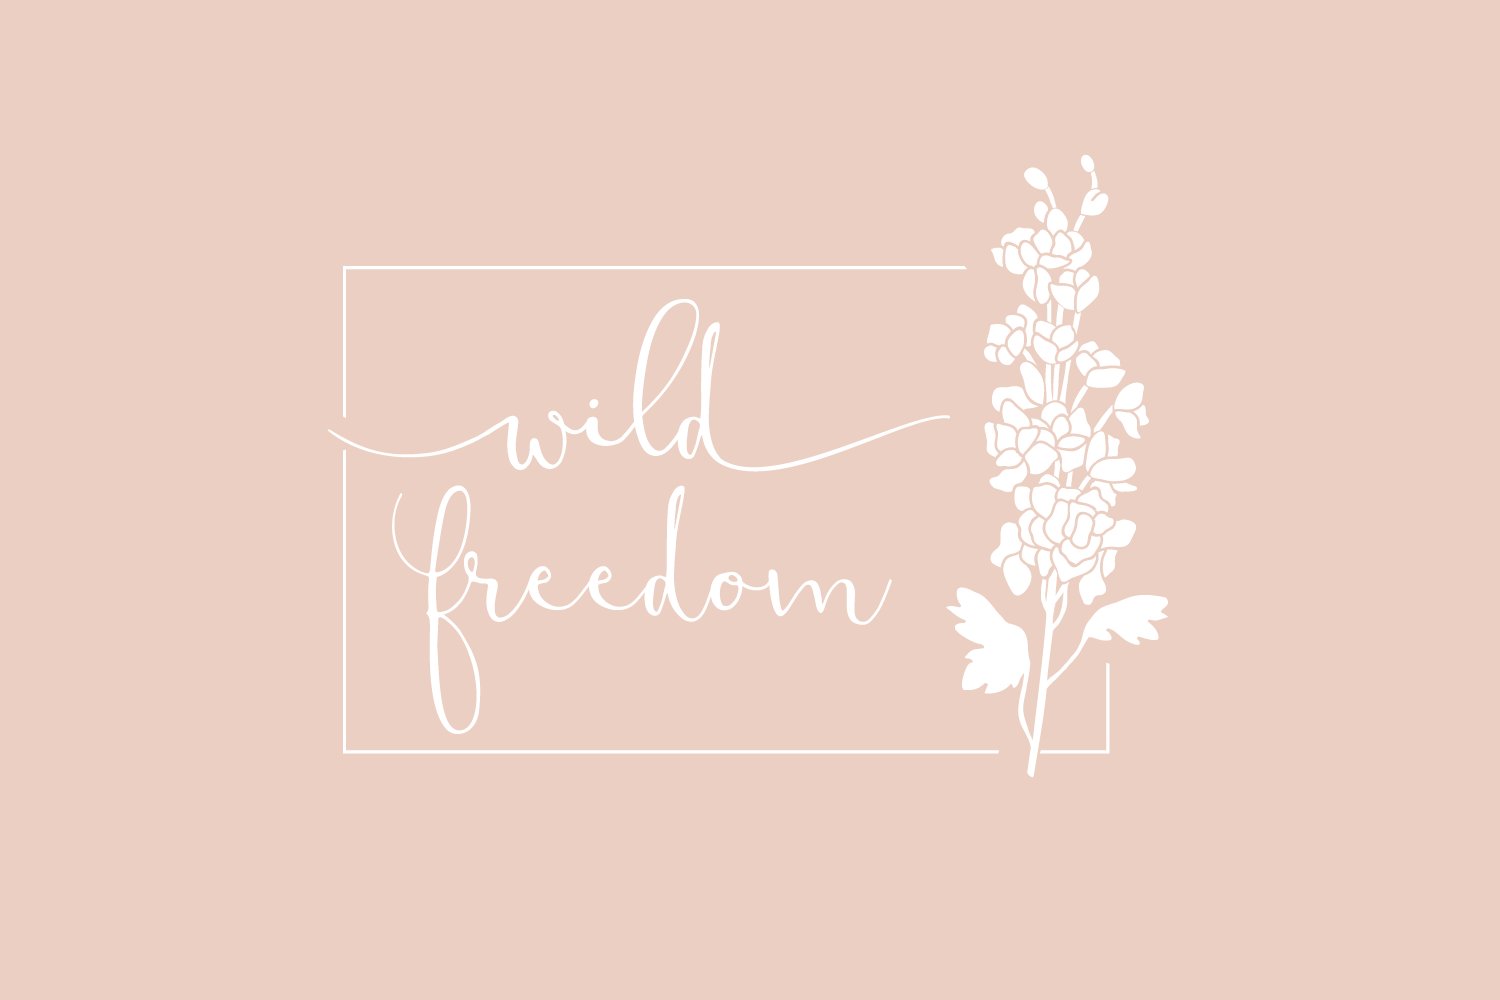 Wild Freedom - Logo and Branding design for small businesses by Bea & Bloom Creative Design Studio